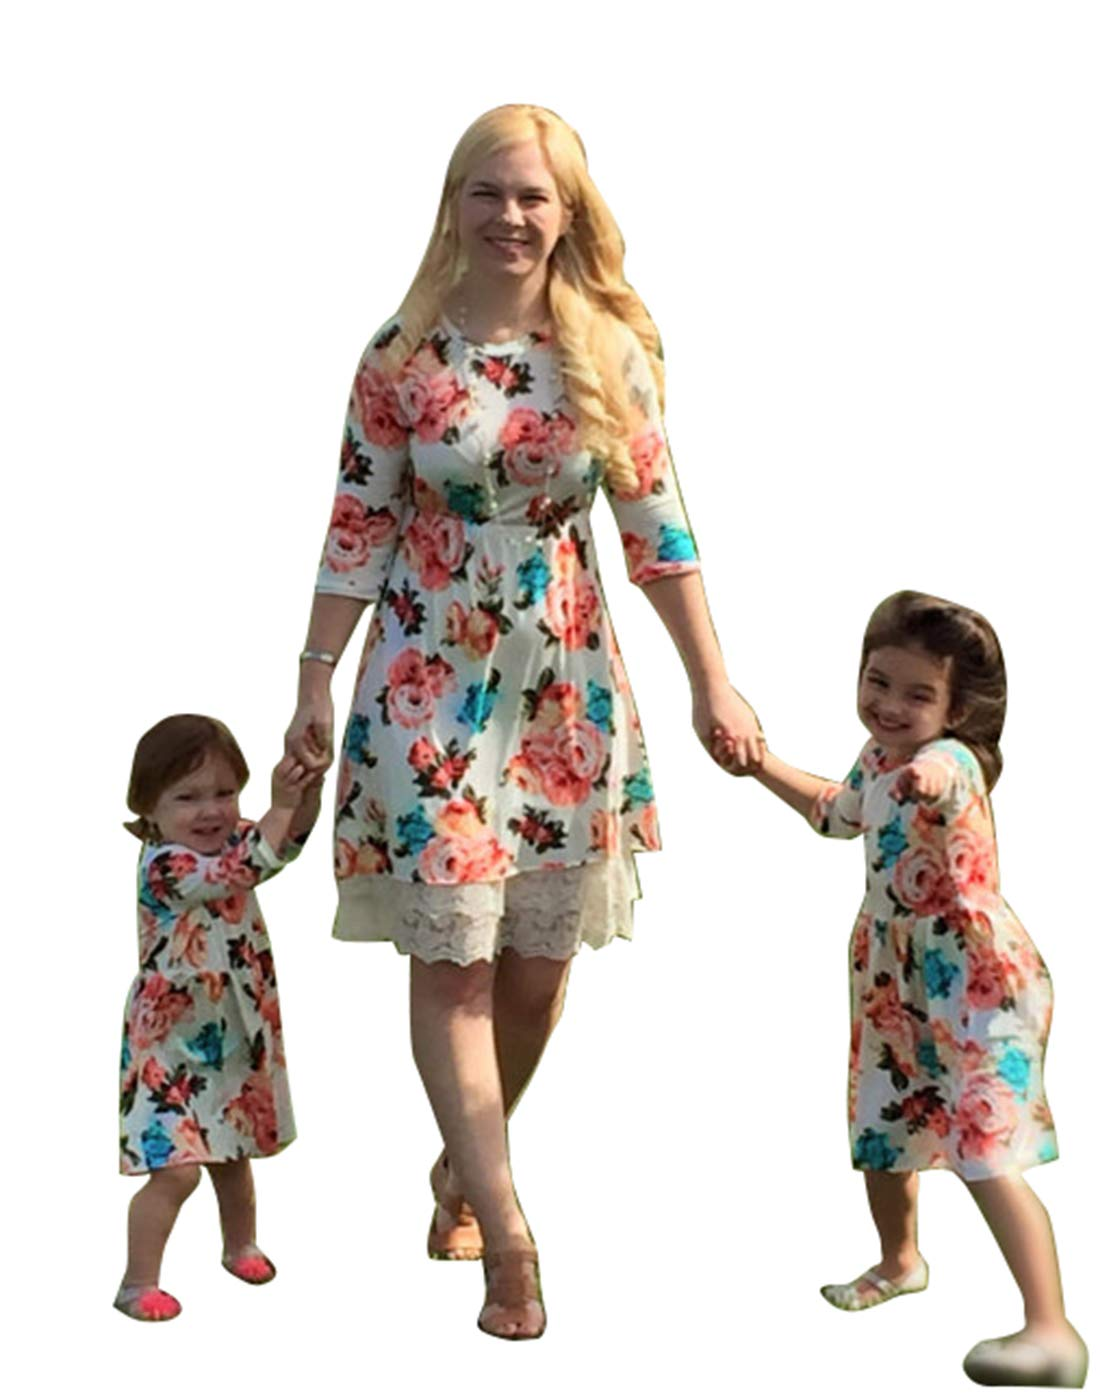 Mommy and Me 1 Piece Floral Print Dress Family Matching Long Sleeve High Waist Lace Midi Dress Spring Fall Outfits (Floral, Daughter/1-2T)